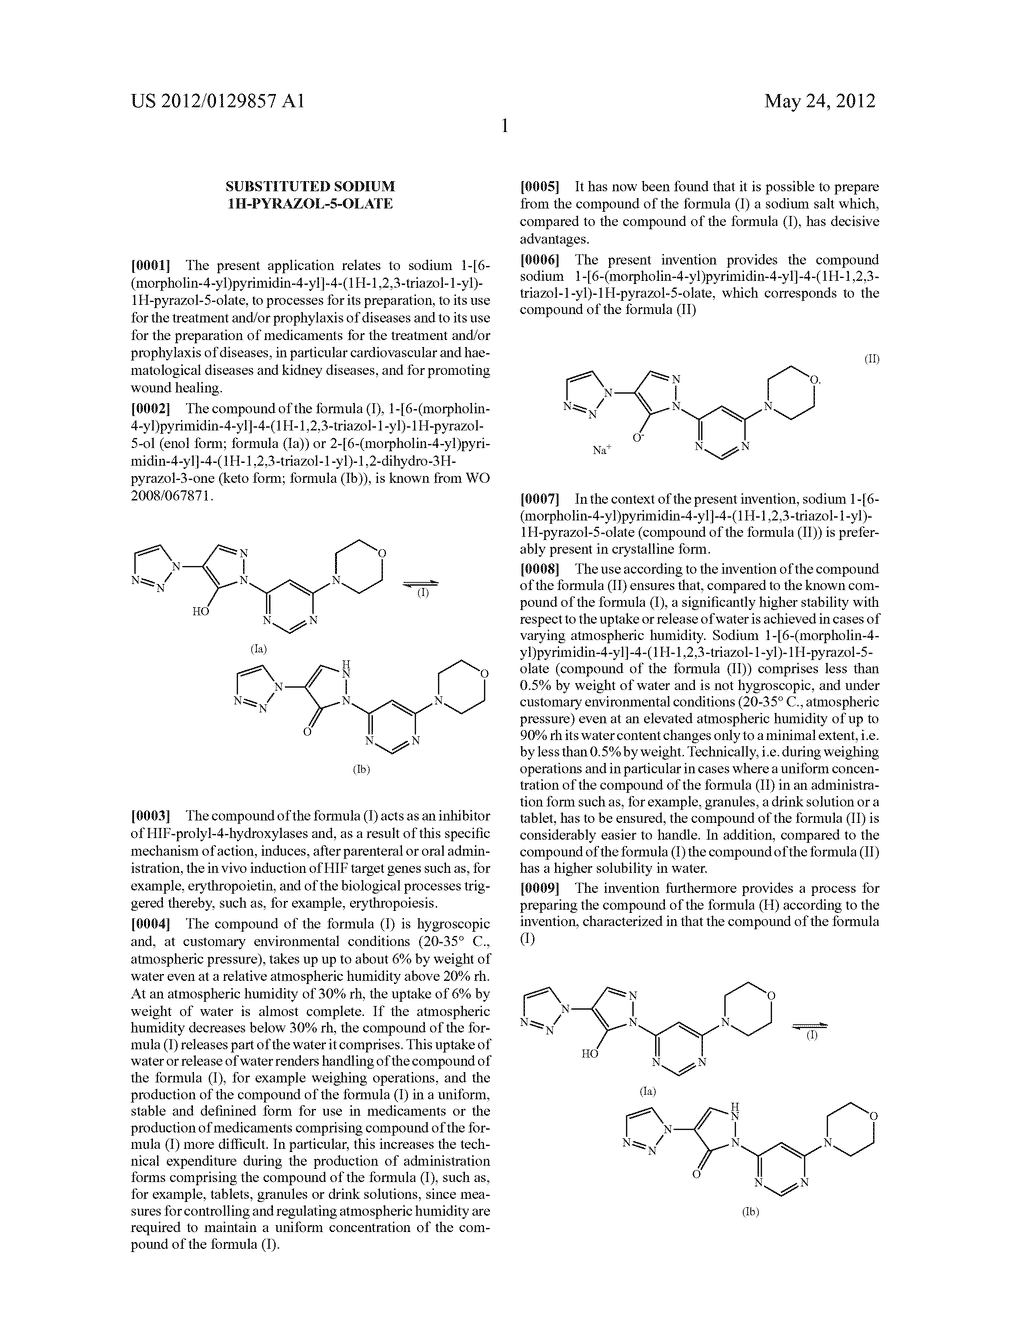 Substituted sodium 1H-pyrazol-5-olate - diagram, schematic, and image 12